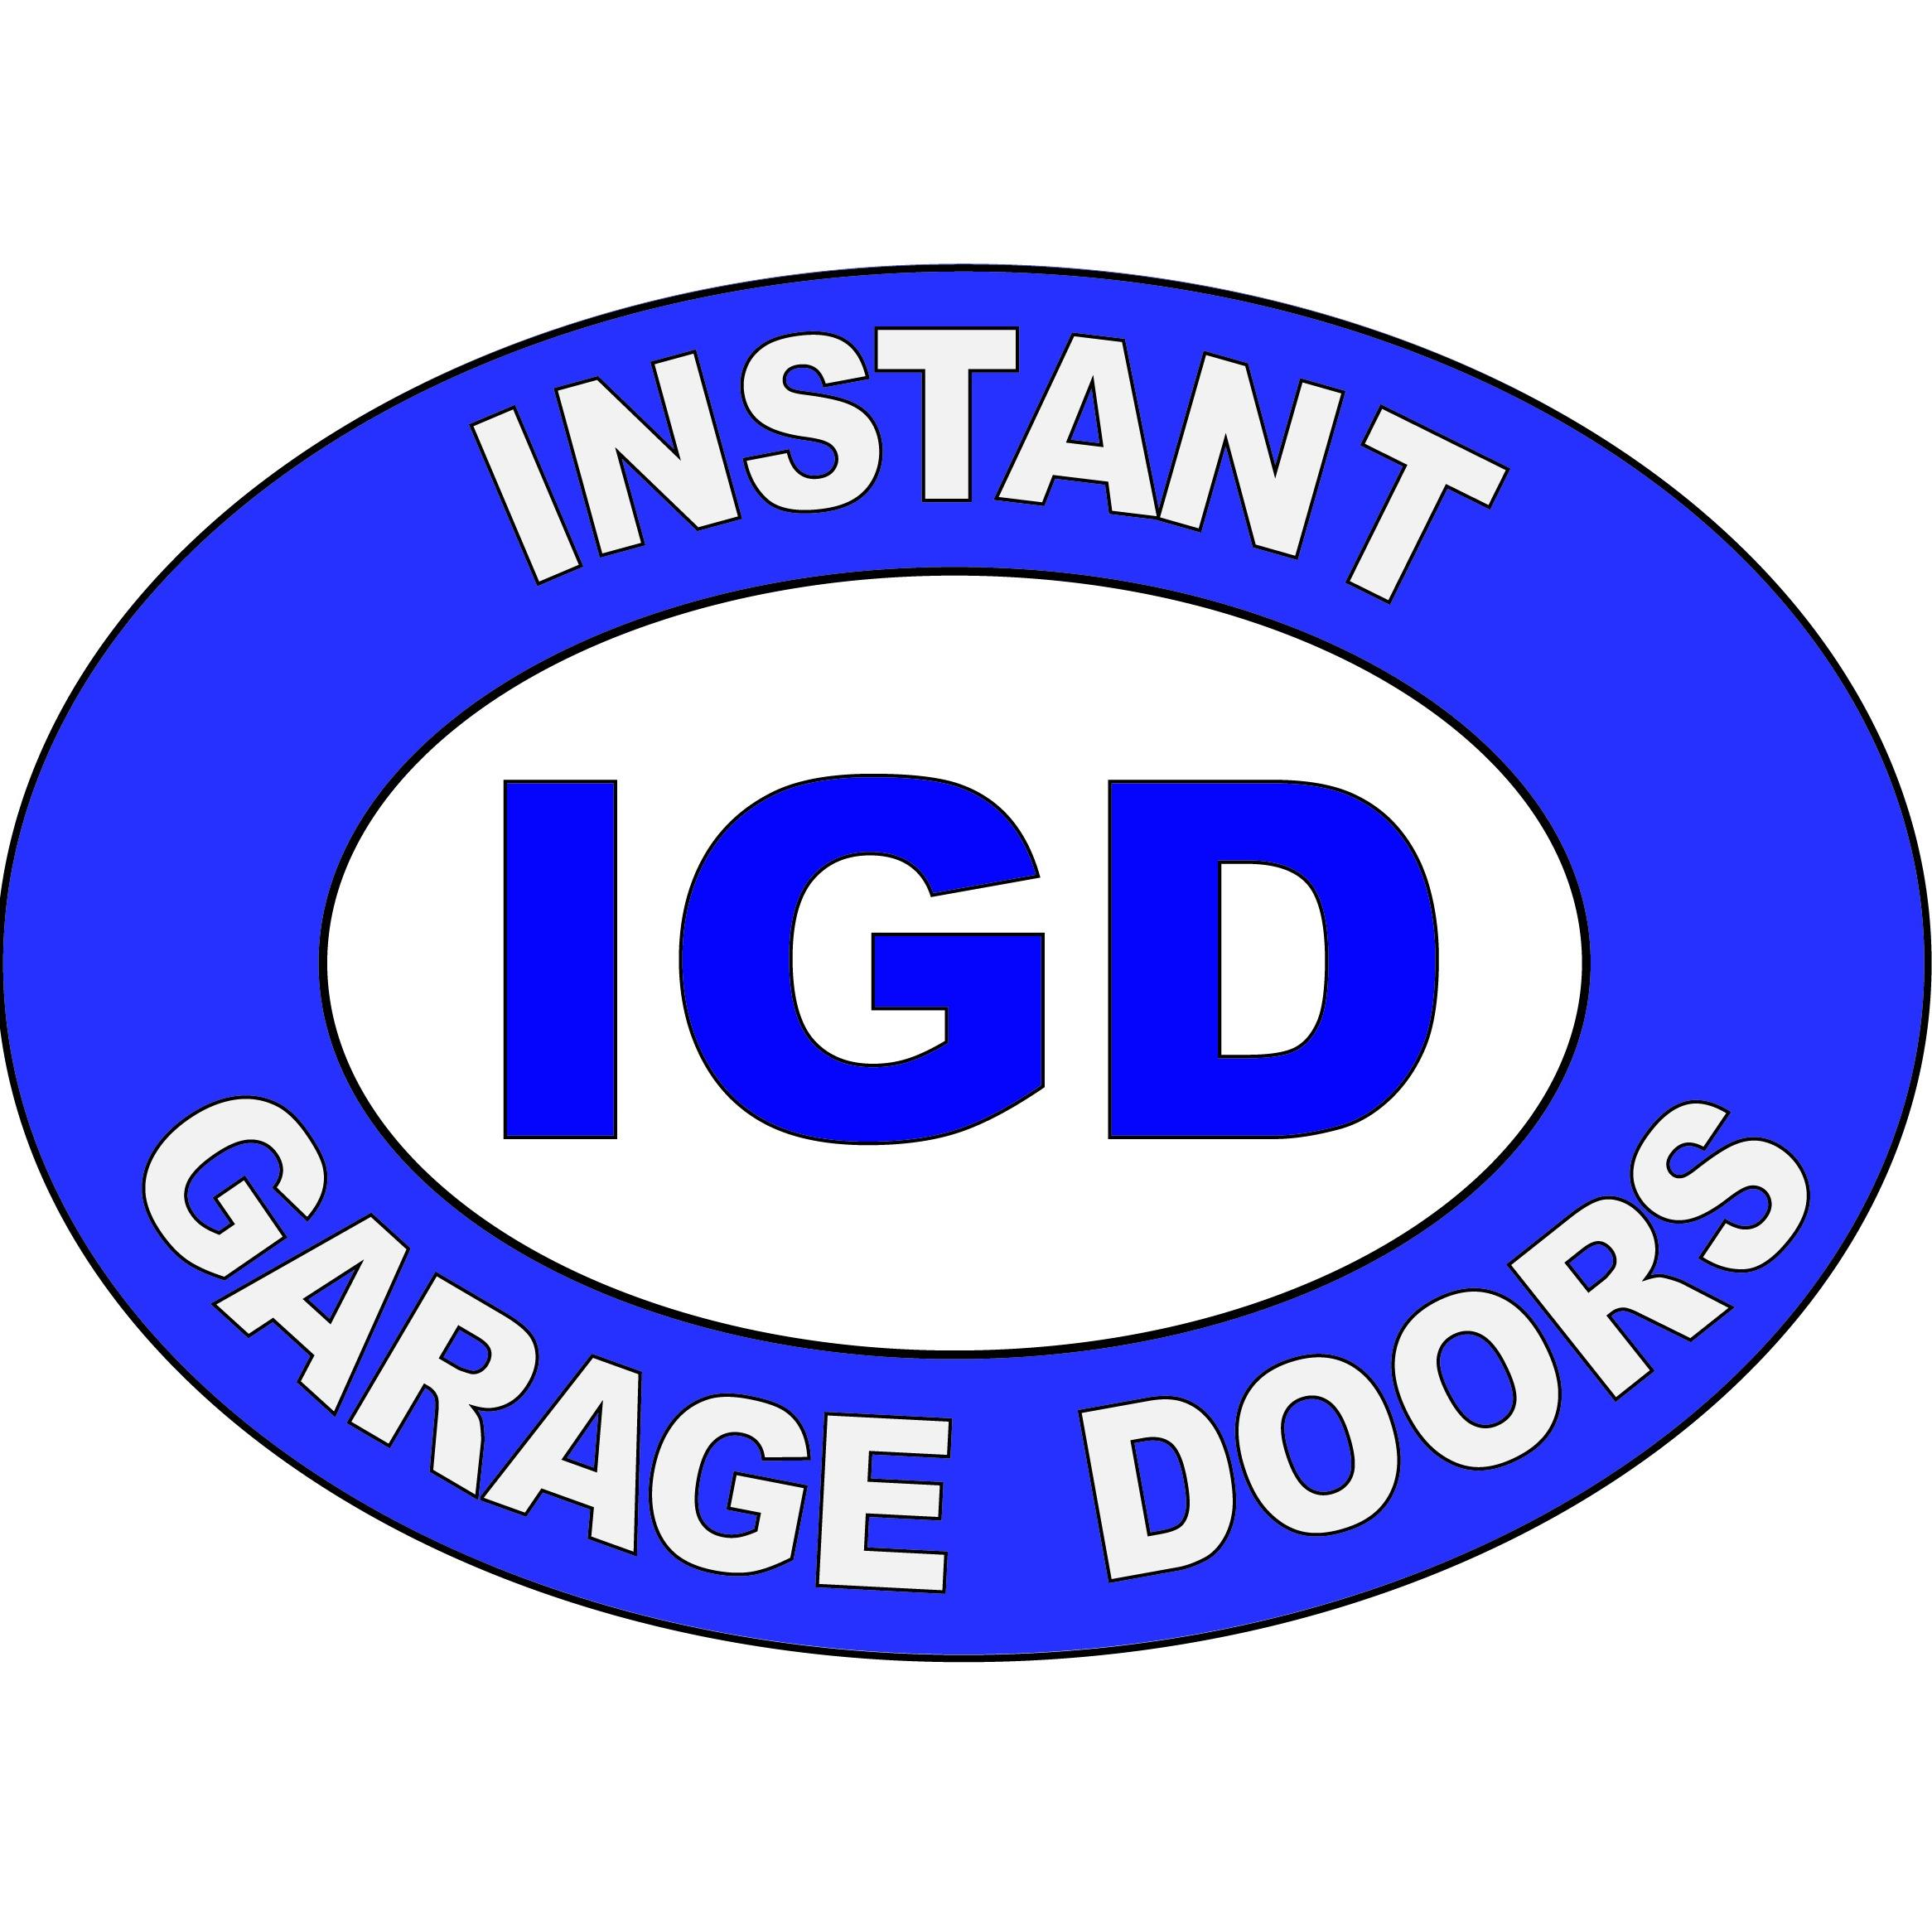 Instant garage door repair igd in renton wa garage for Garage door repair renton